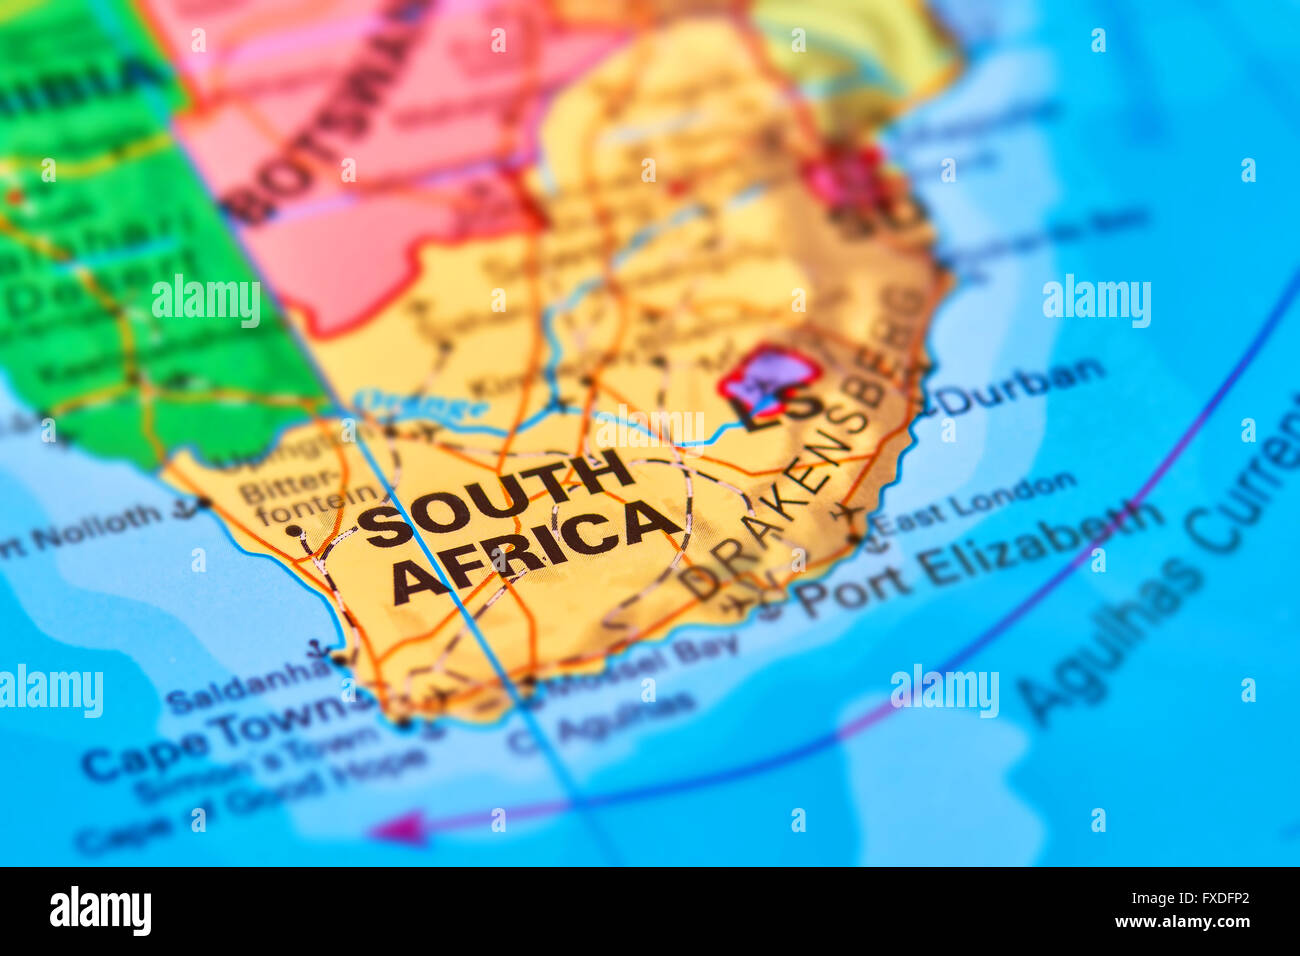 South africa country on the world map stock photo 102330650 alamy south africa country on the world map gumiabroncs Gallery